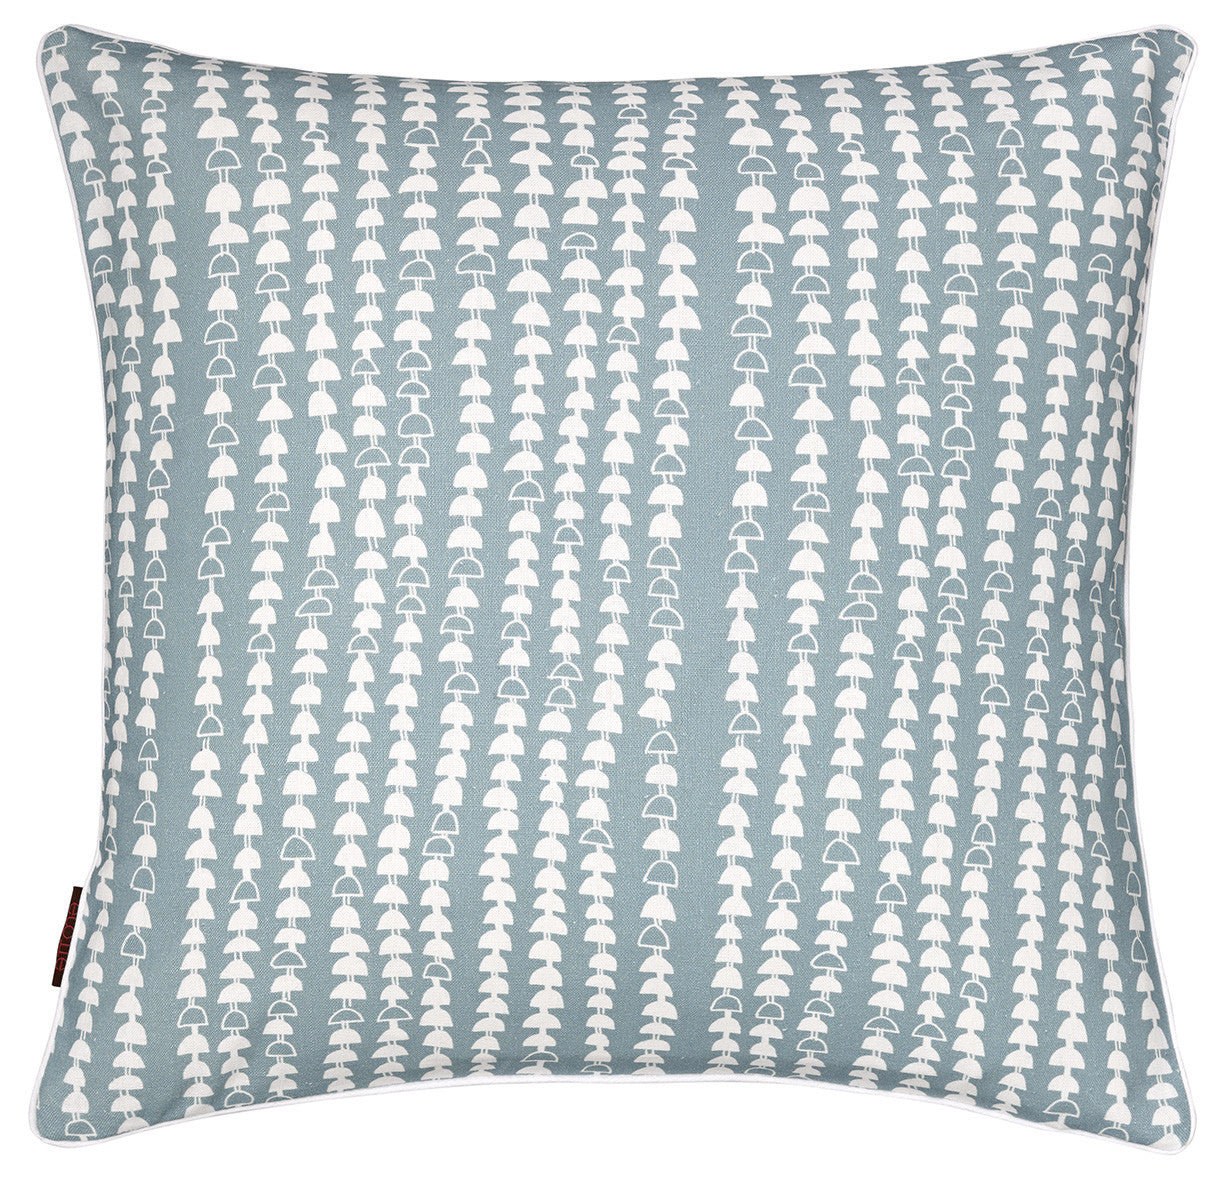 navy bright sofa decorative pillow covers accent aqua pillows and throw design blue idea white home pale teal light purple for